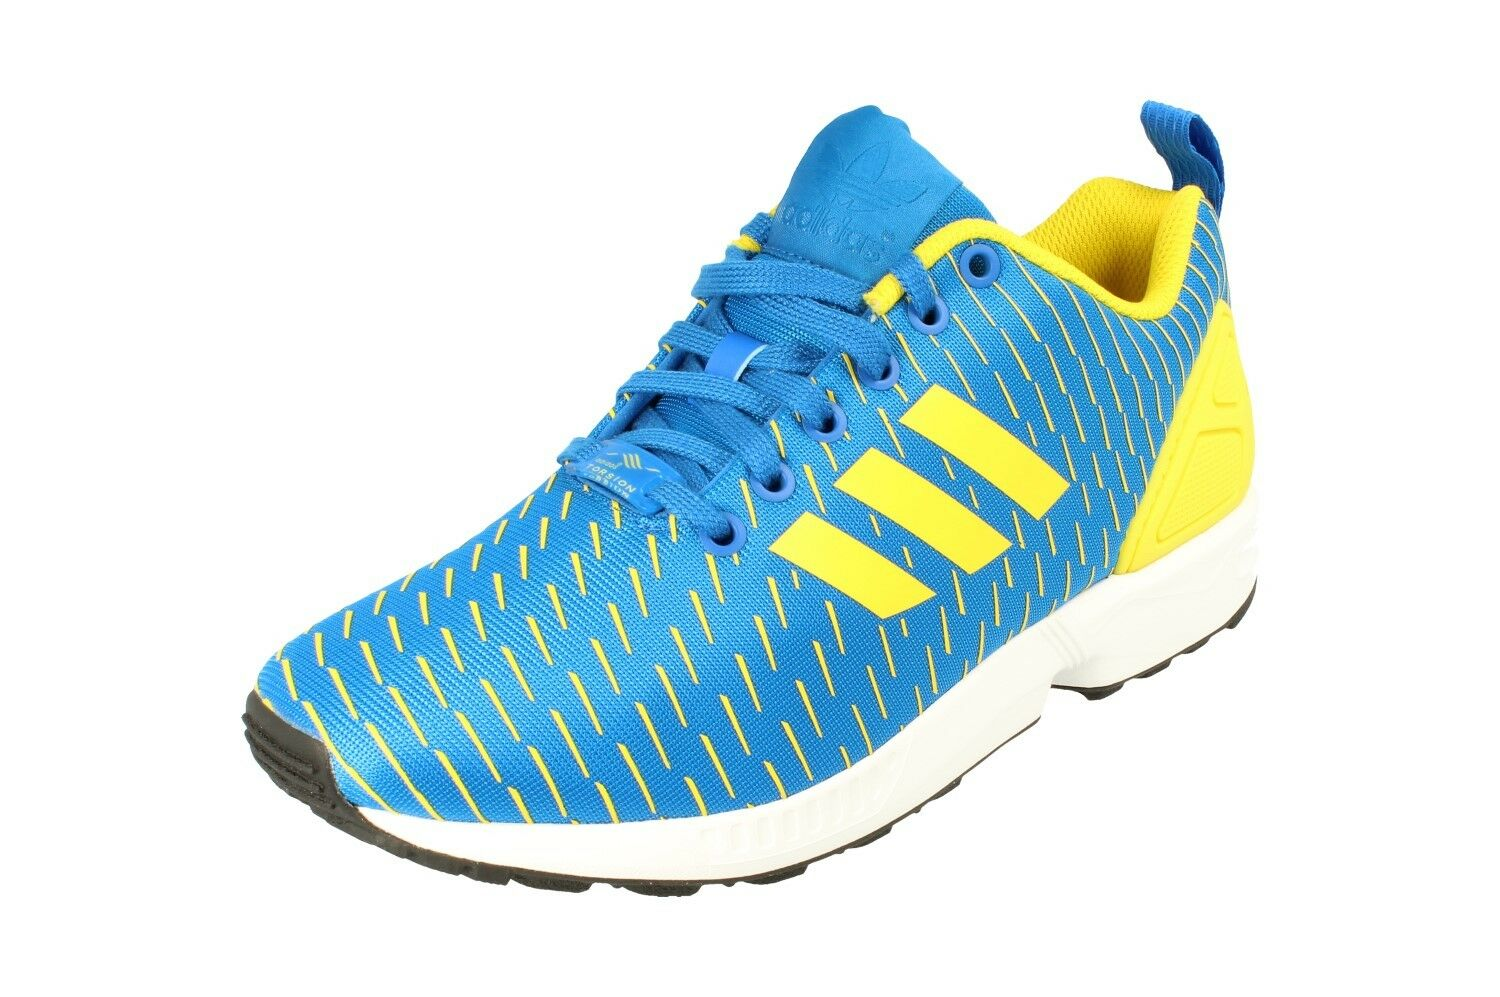 Adidas originals zx flux mens mens mens läuft trainer turnschuhe aq4531 4528ca